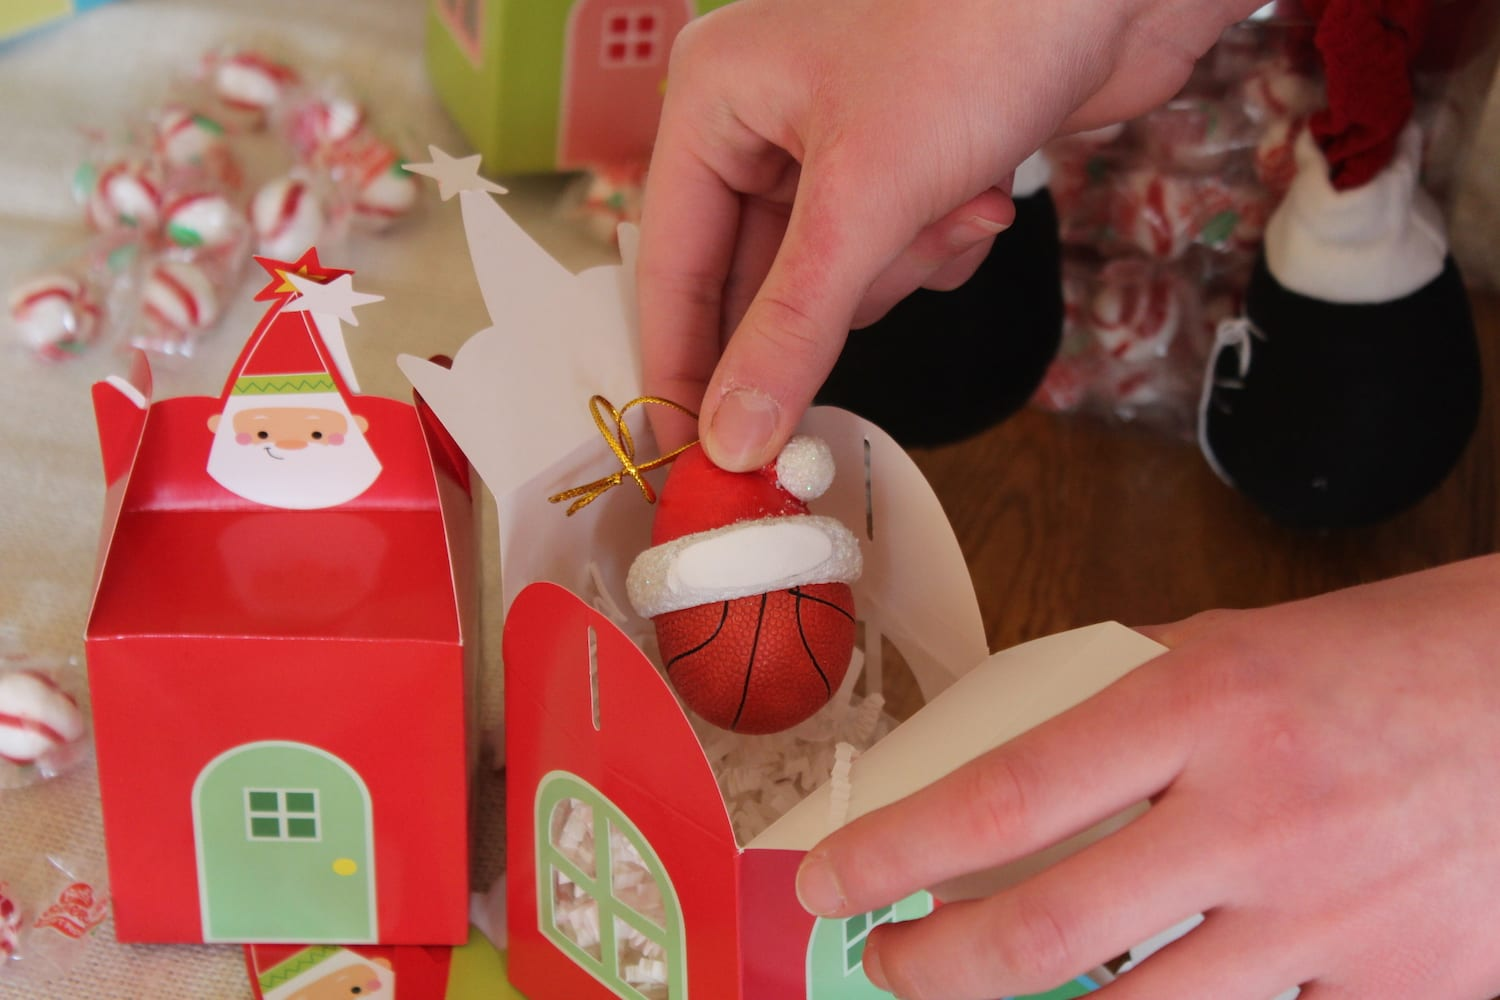 offer portable containers for the ornament exchange